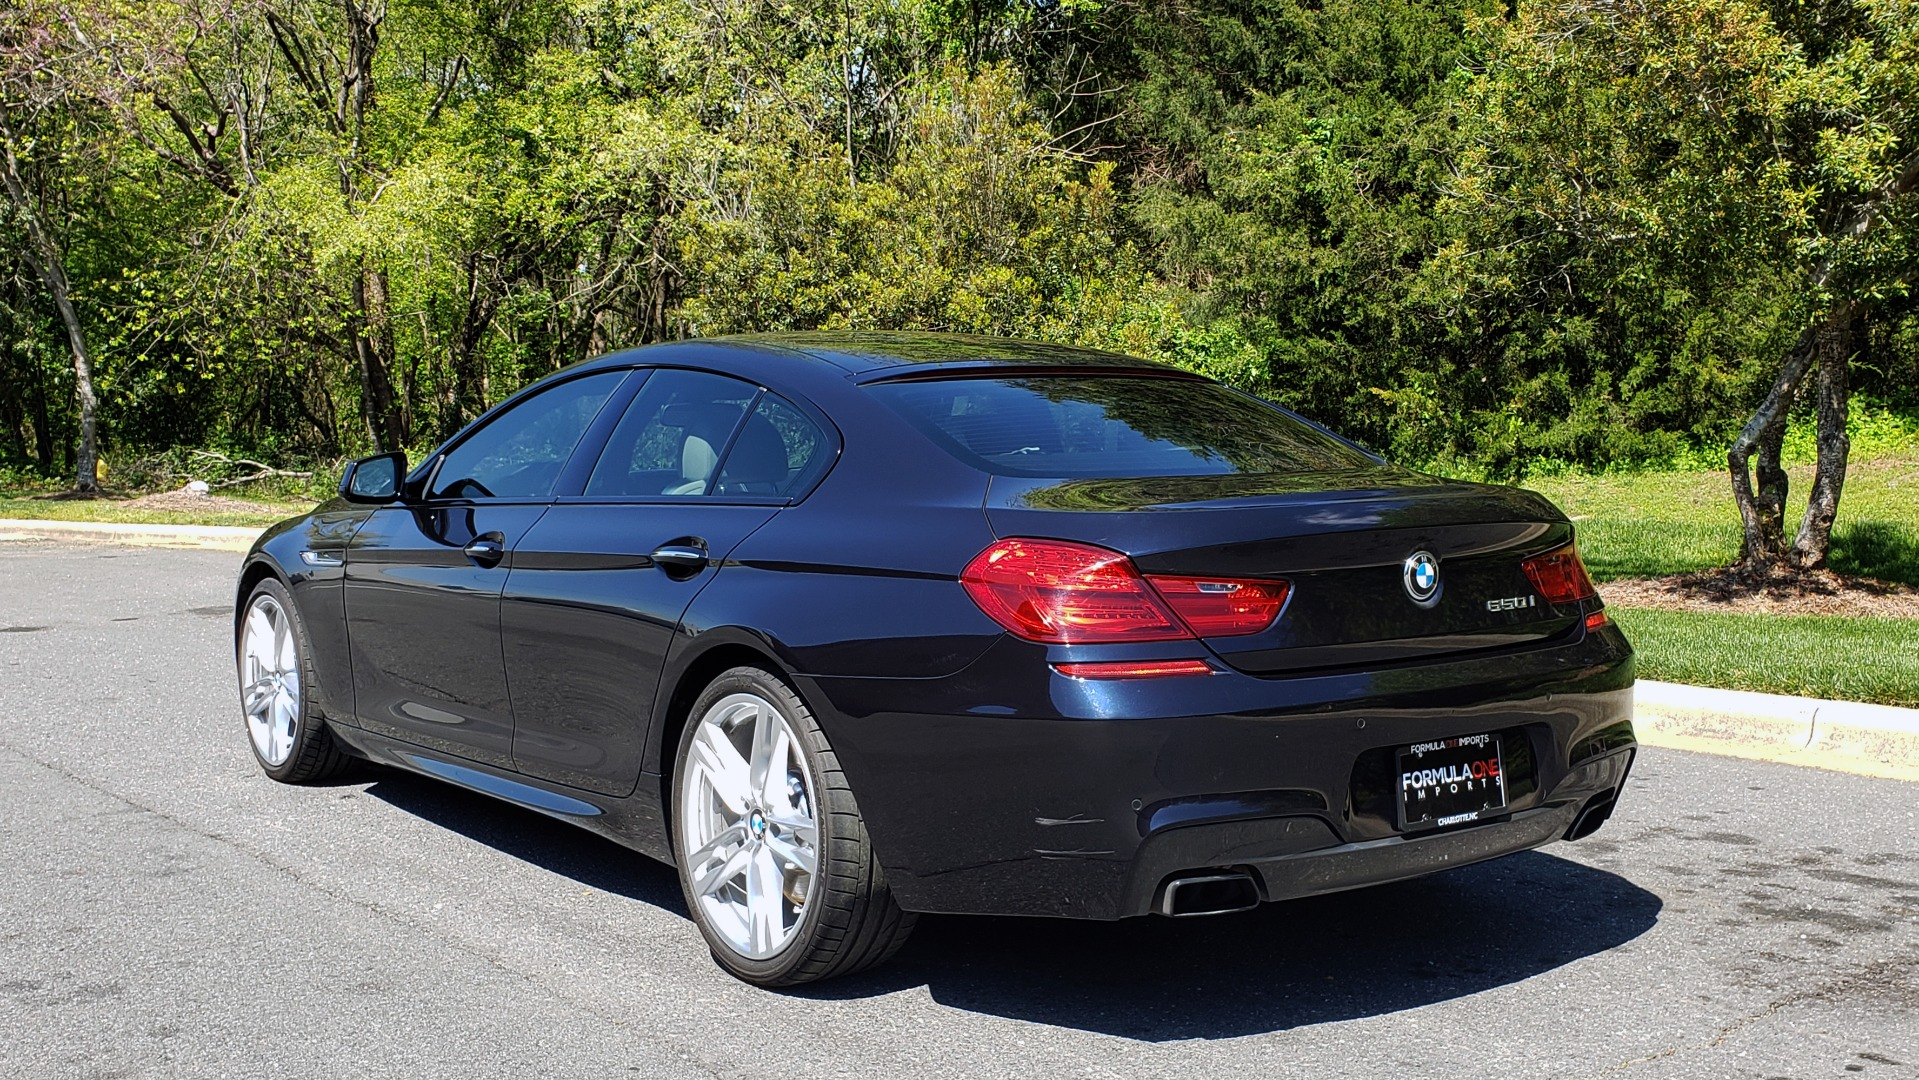 Used 2015 BMW 6 SERIES 650I GRANCOUPE M-SPORT / EXEC / DRVR ASST PLUS / LIGHTING for sale Sold at Formula Imports in Charlotte NC 28227 4